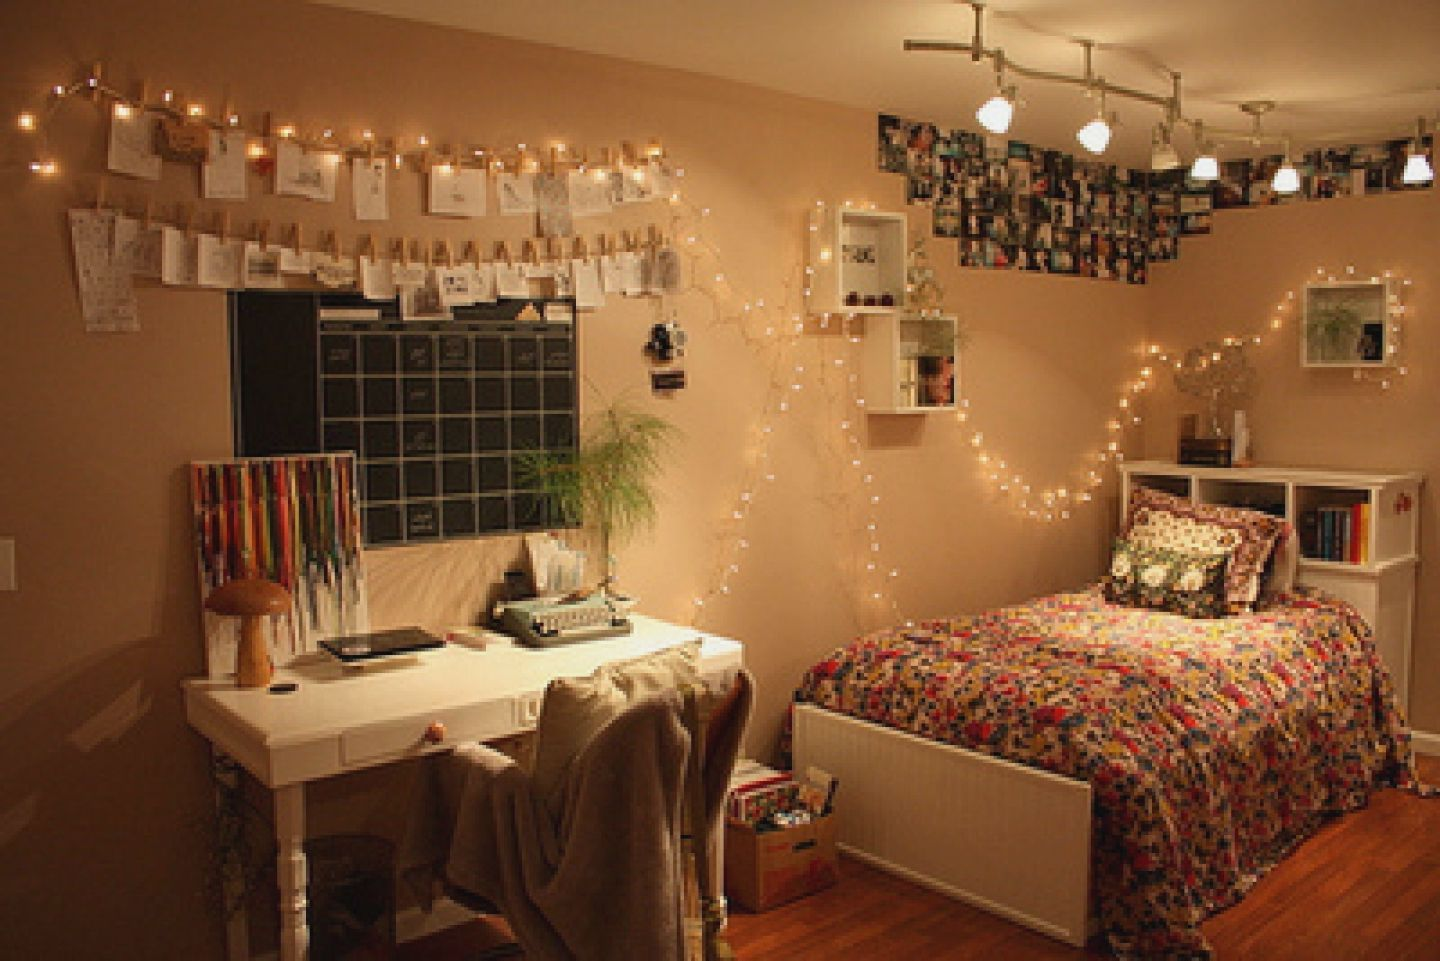 Cool bedroom ideas for teenage girls tumblr - 17 Best Images About Bedrooms On Pinterest Tumblr Room Bedroom Ideas And Hipster Rooms 17